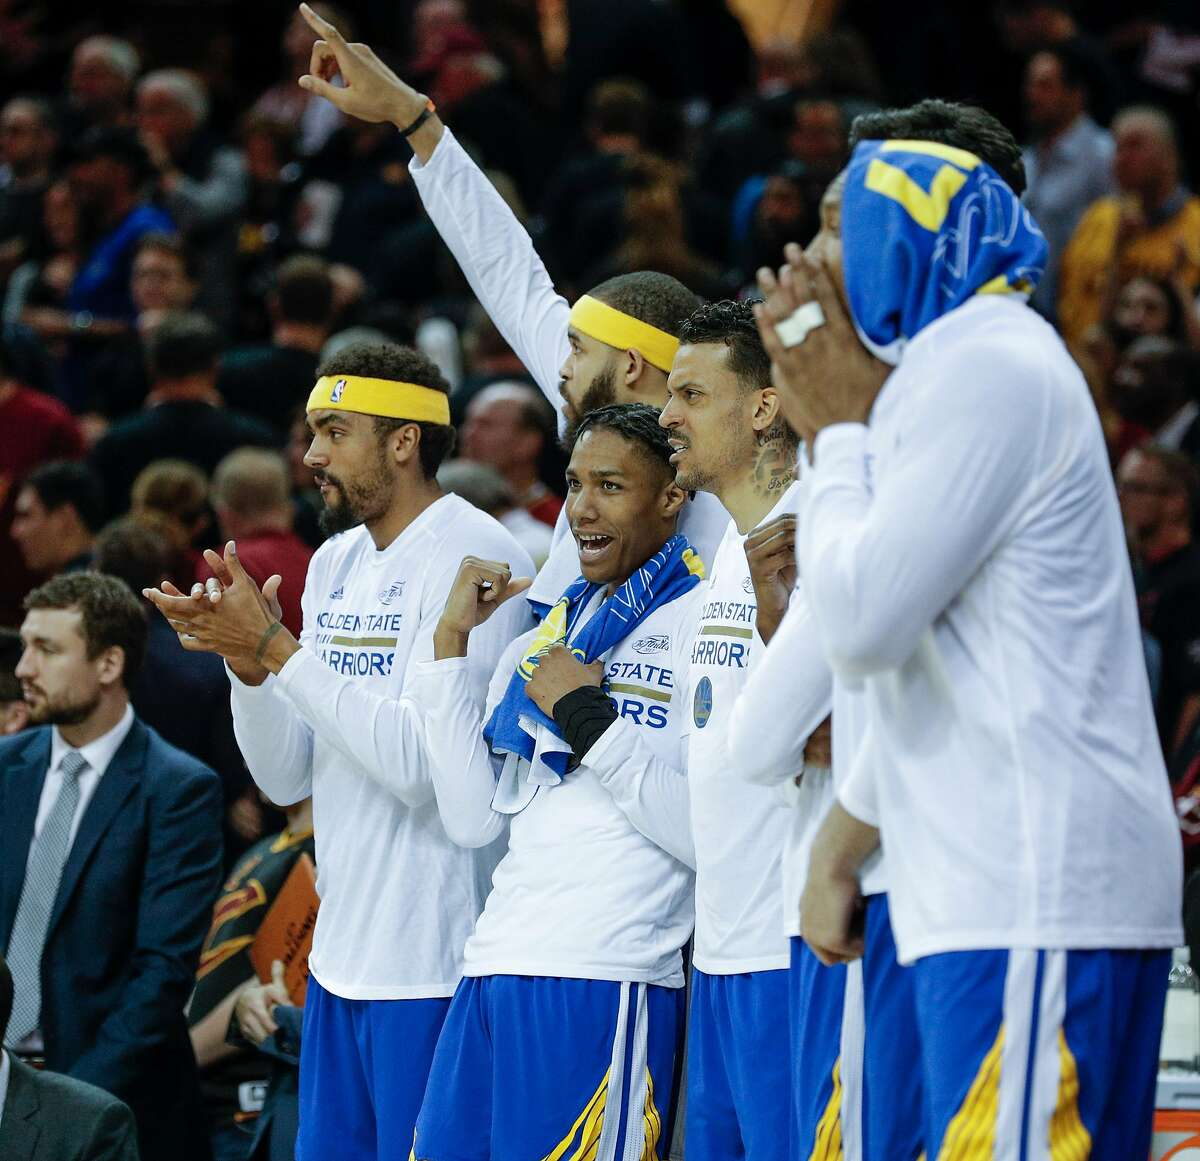 The Golden State Warriors' bench watches the final moments of Game 3 of the 2017 NBA Finals at Quicken Loans Arena on Wednesday, June 7, 2017 in Cleveland, Ohio